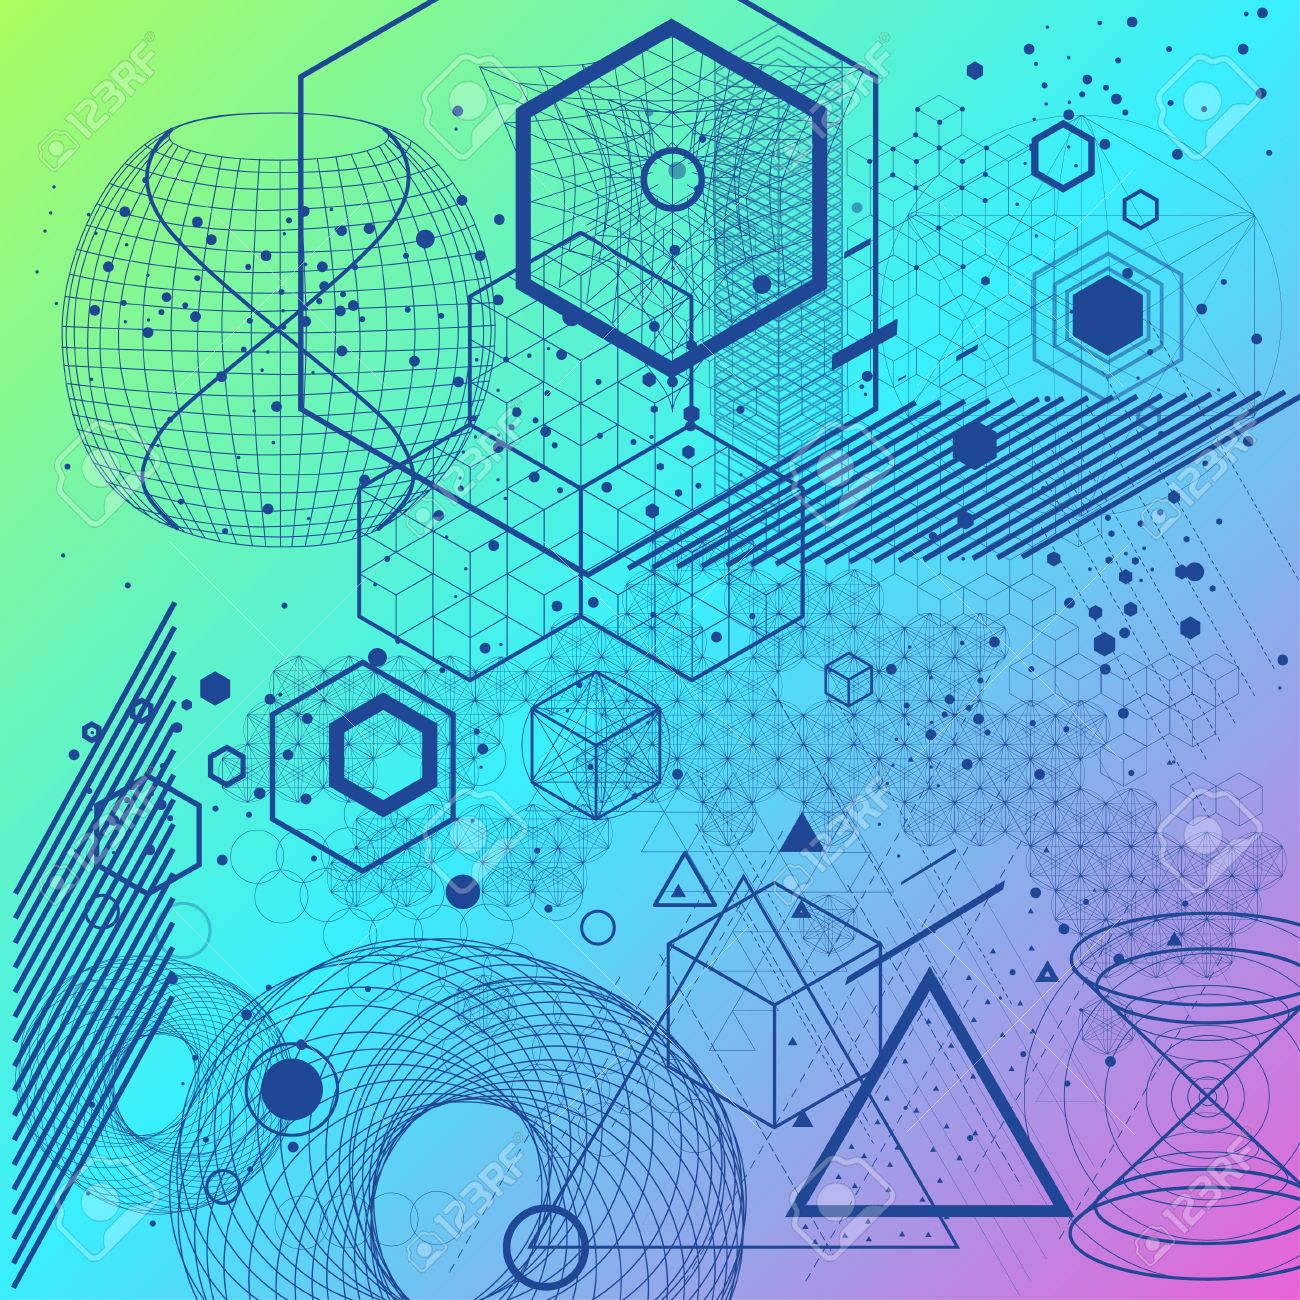 the science and mathematics abstract background with circles